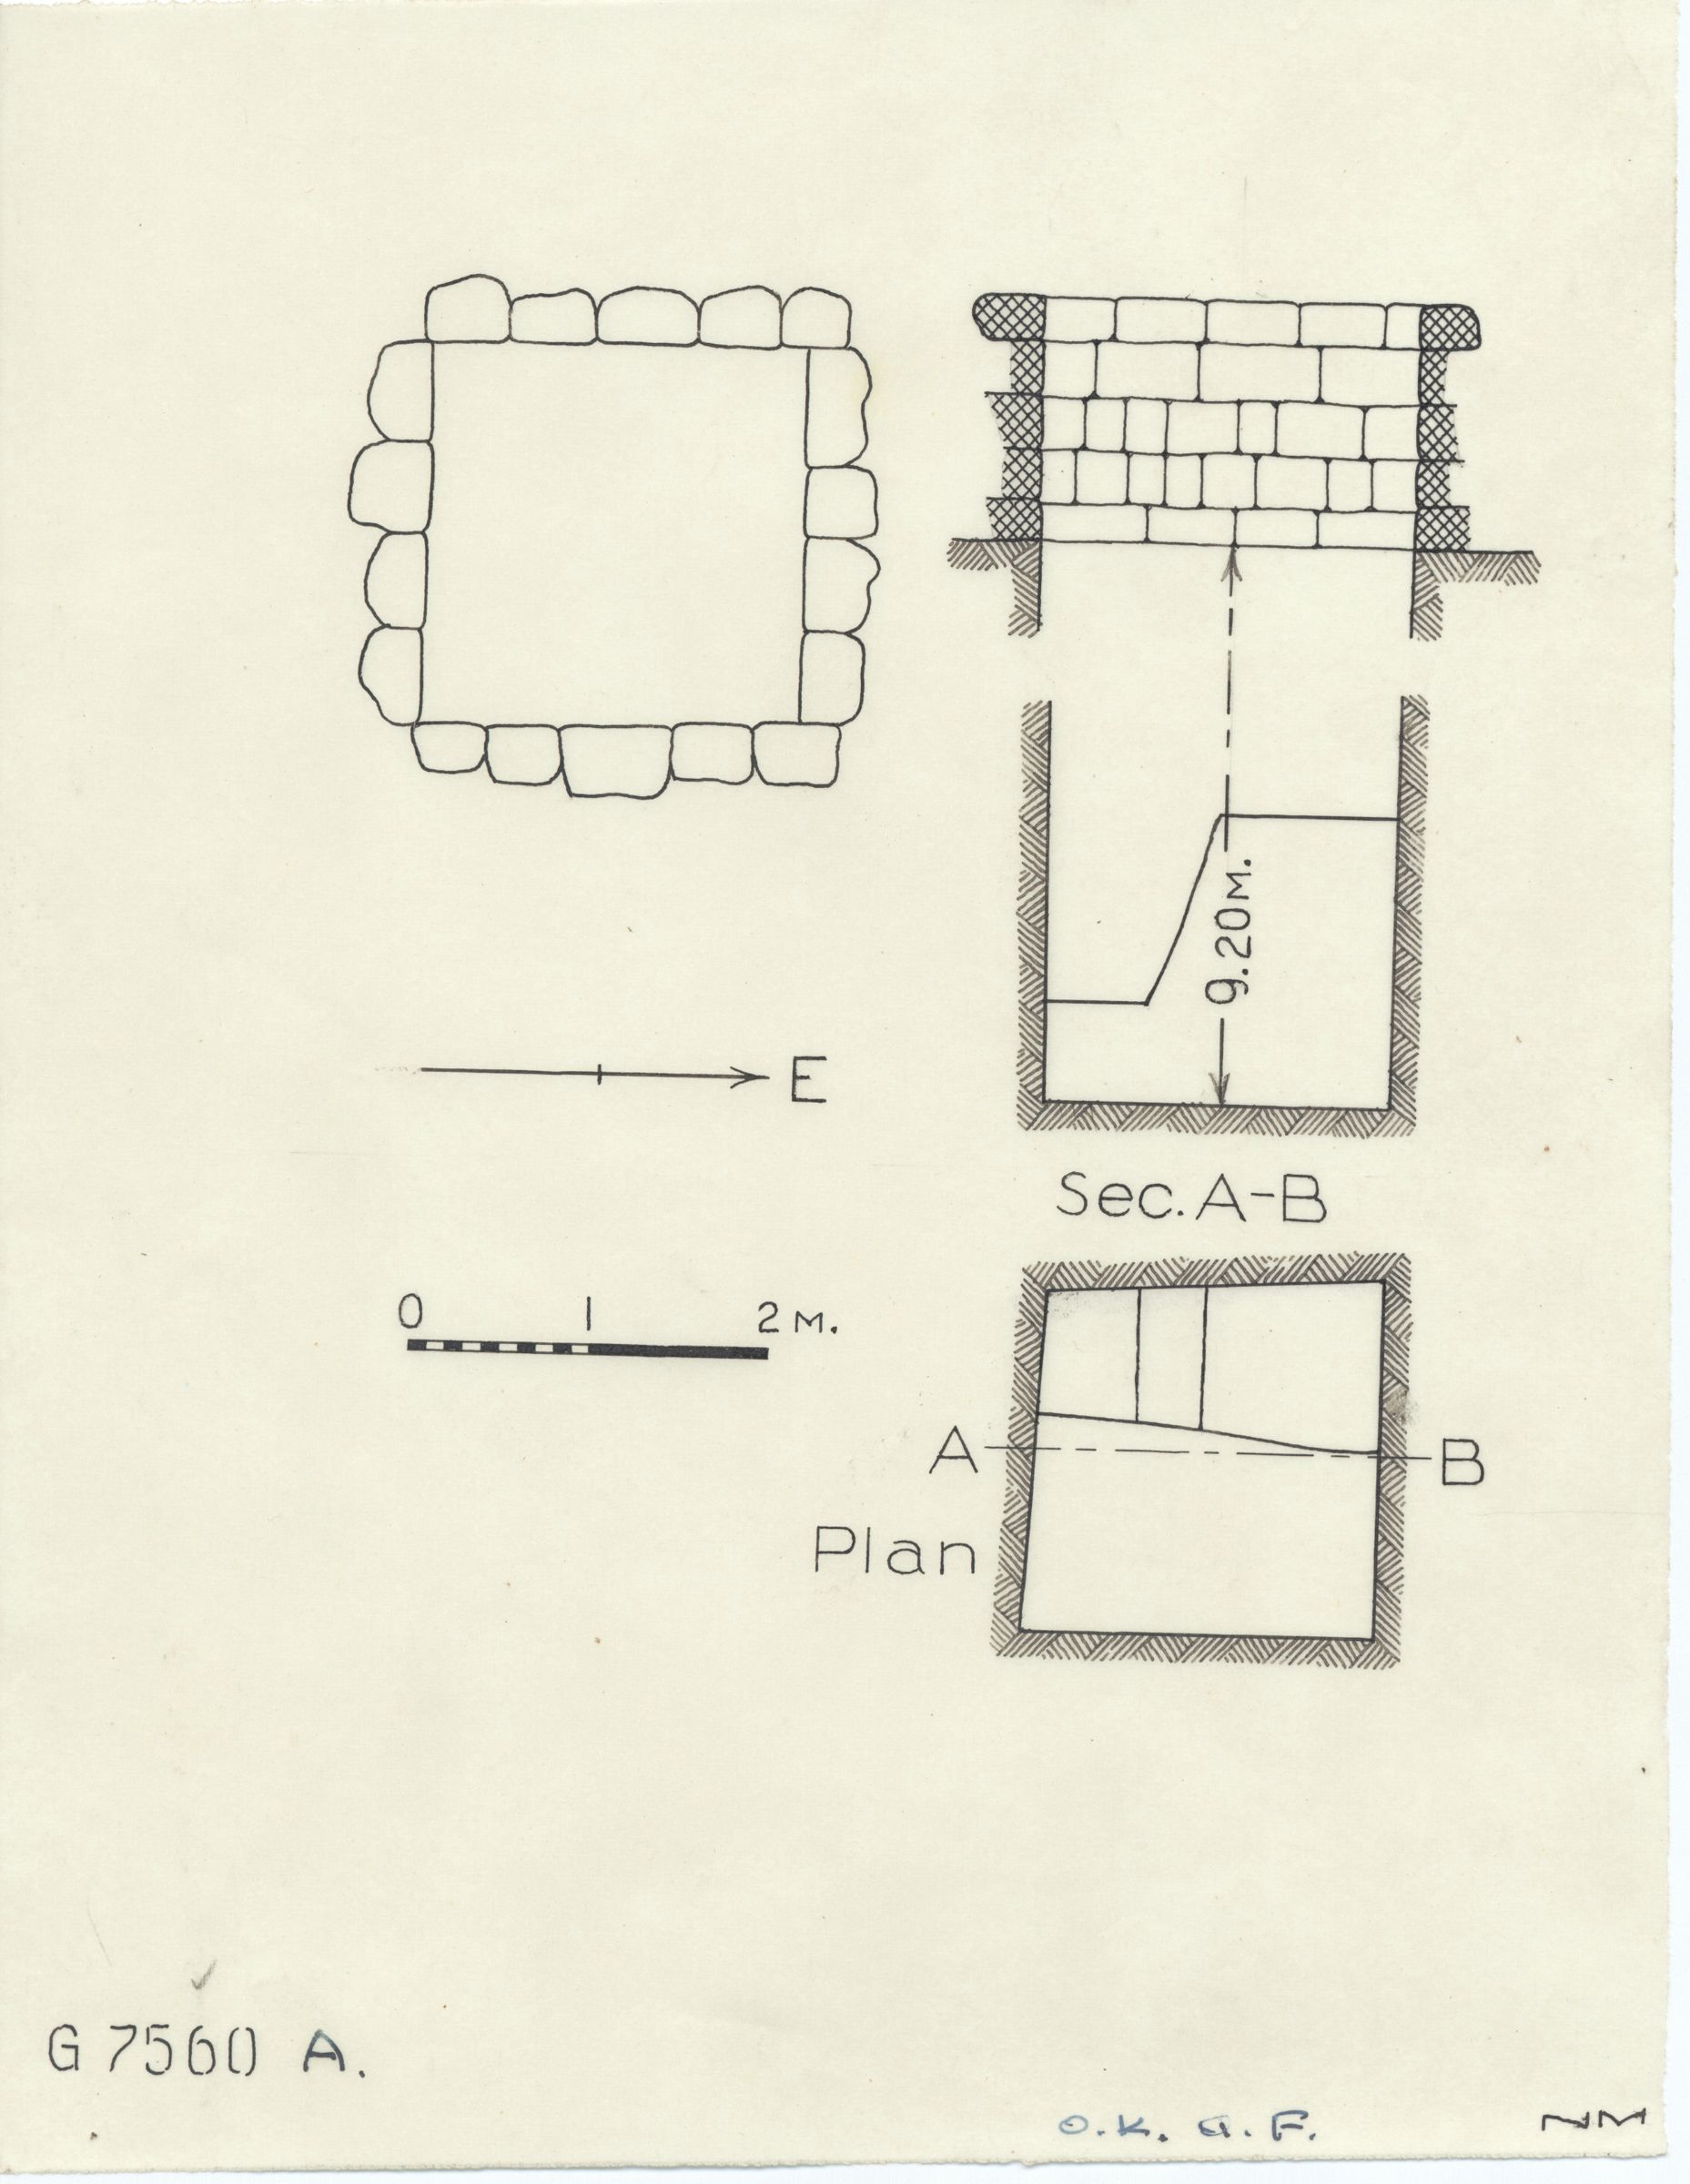 Maps and plans: G 7560, Shaft A